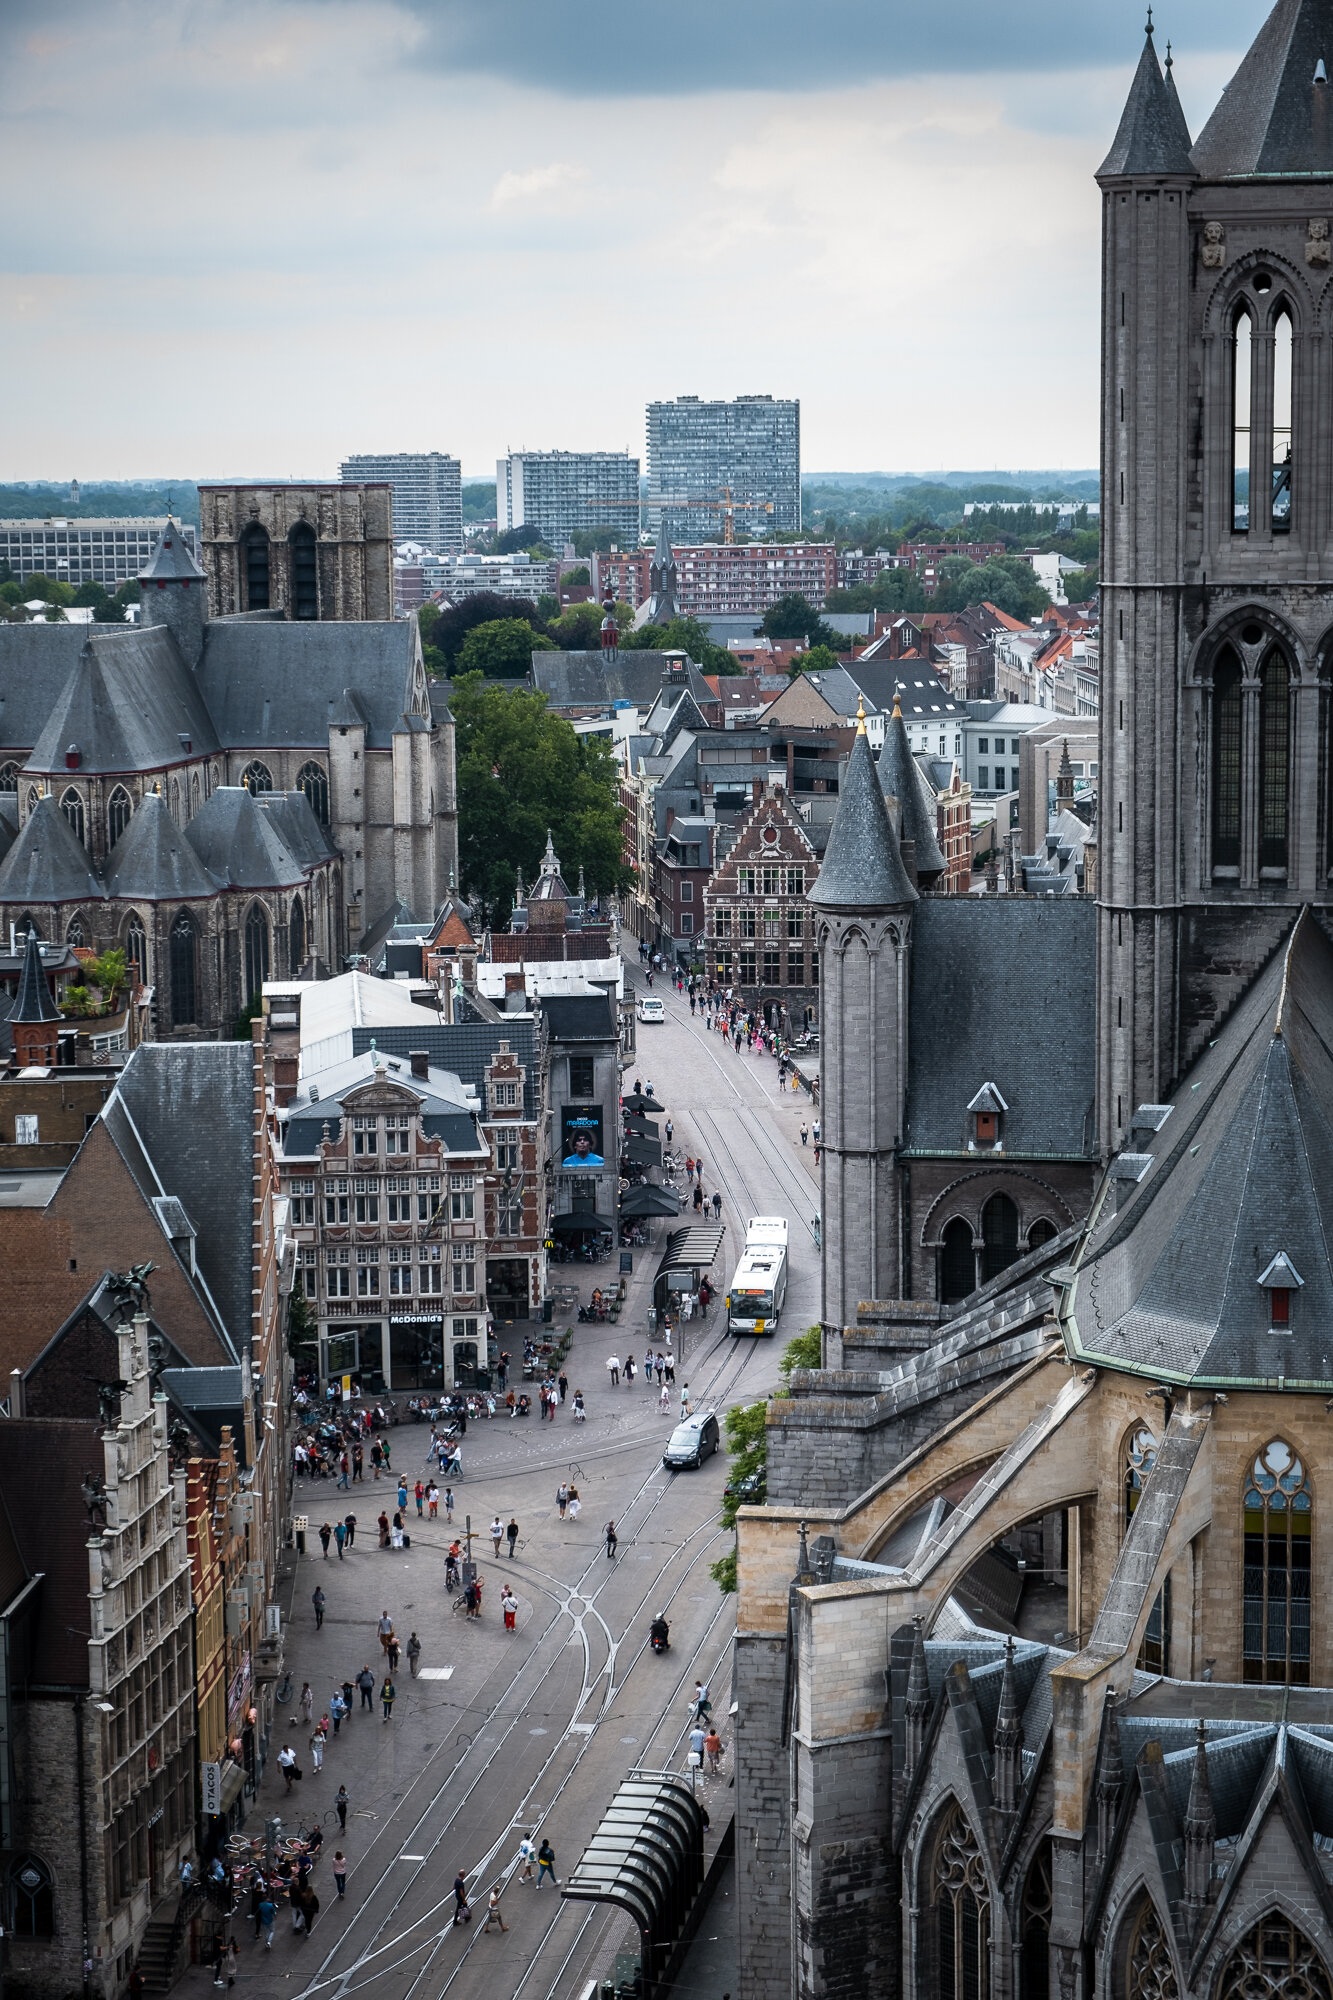 The view of Saint Michael's from the Belfry of Ghent